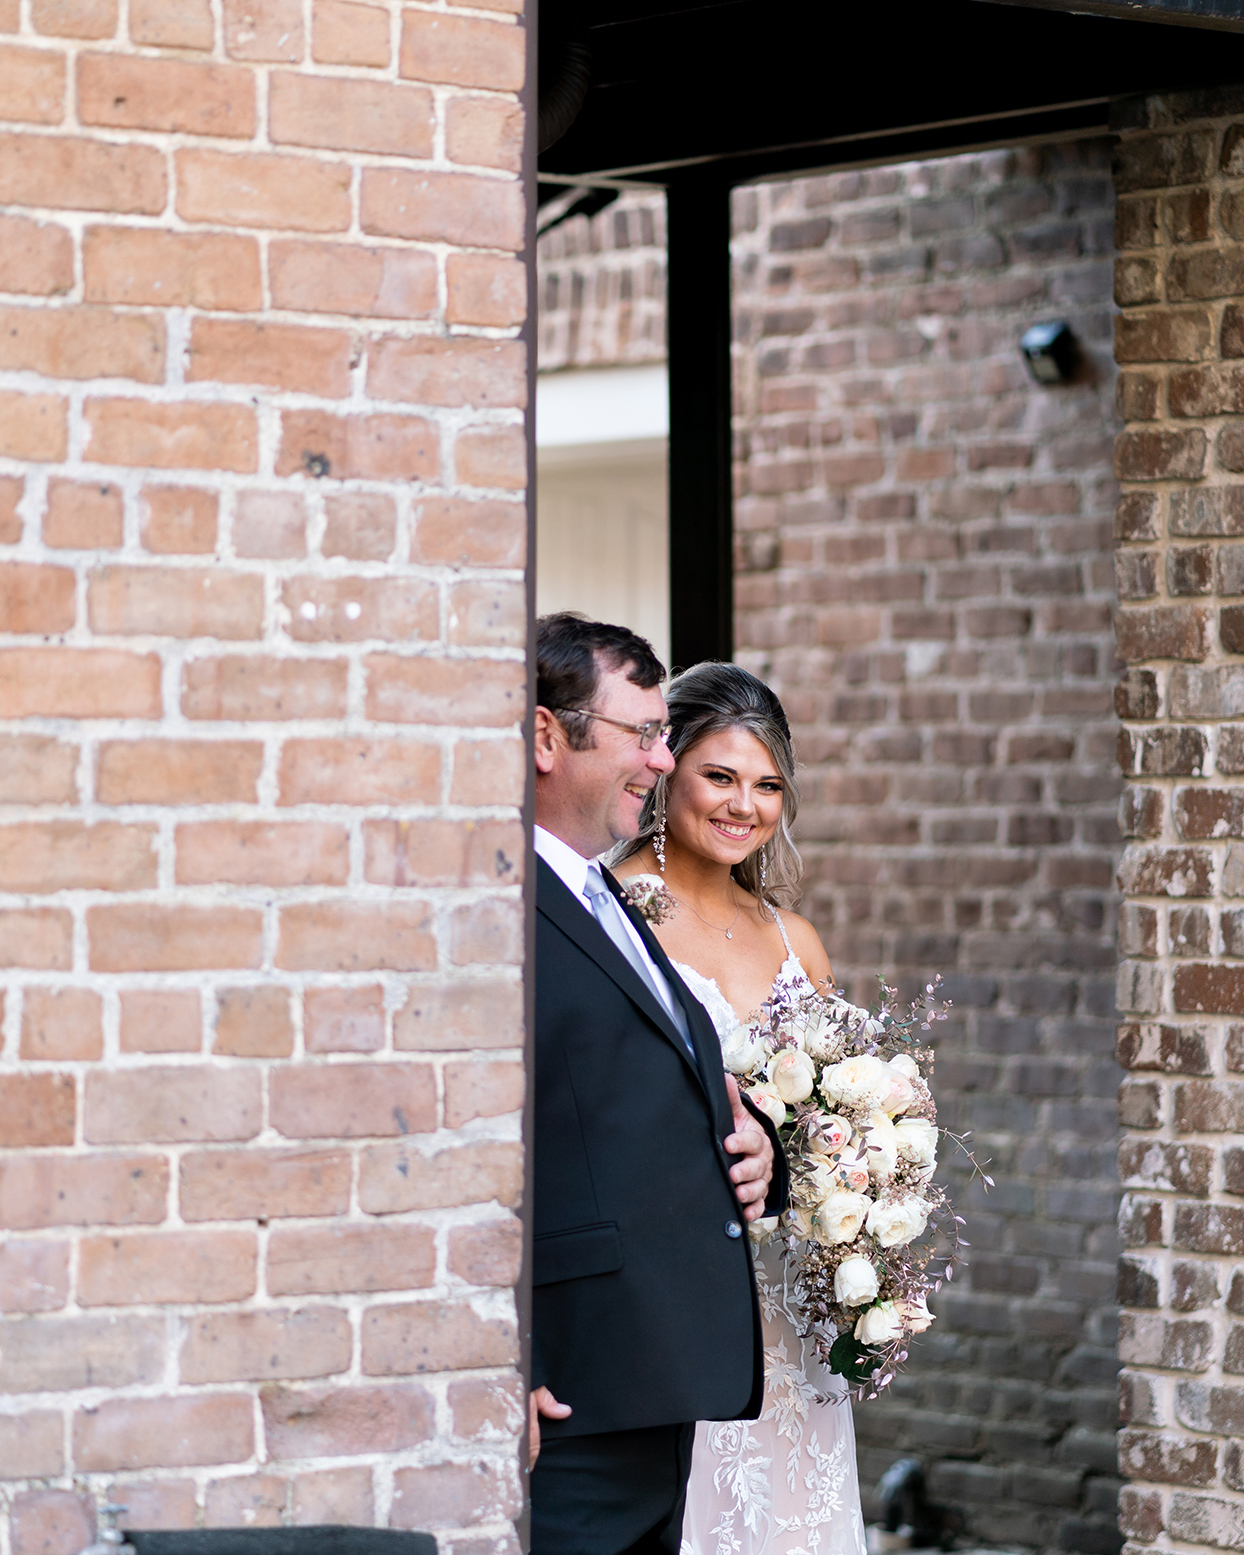 bride and father smiling as they process through stone entryway